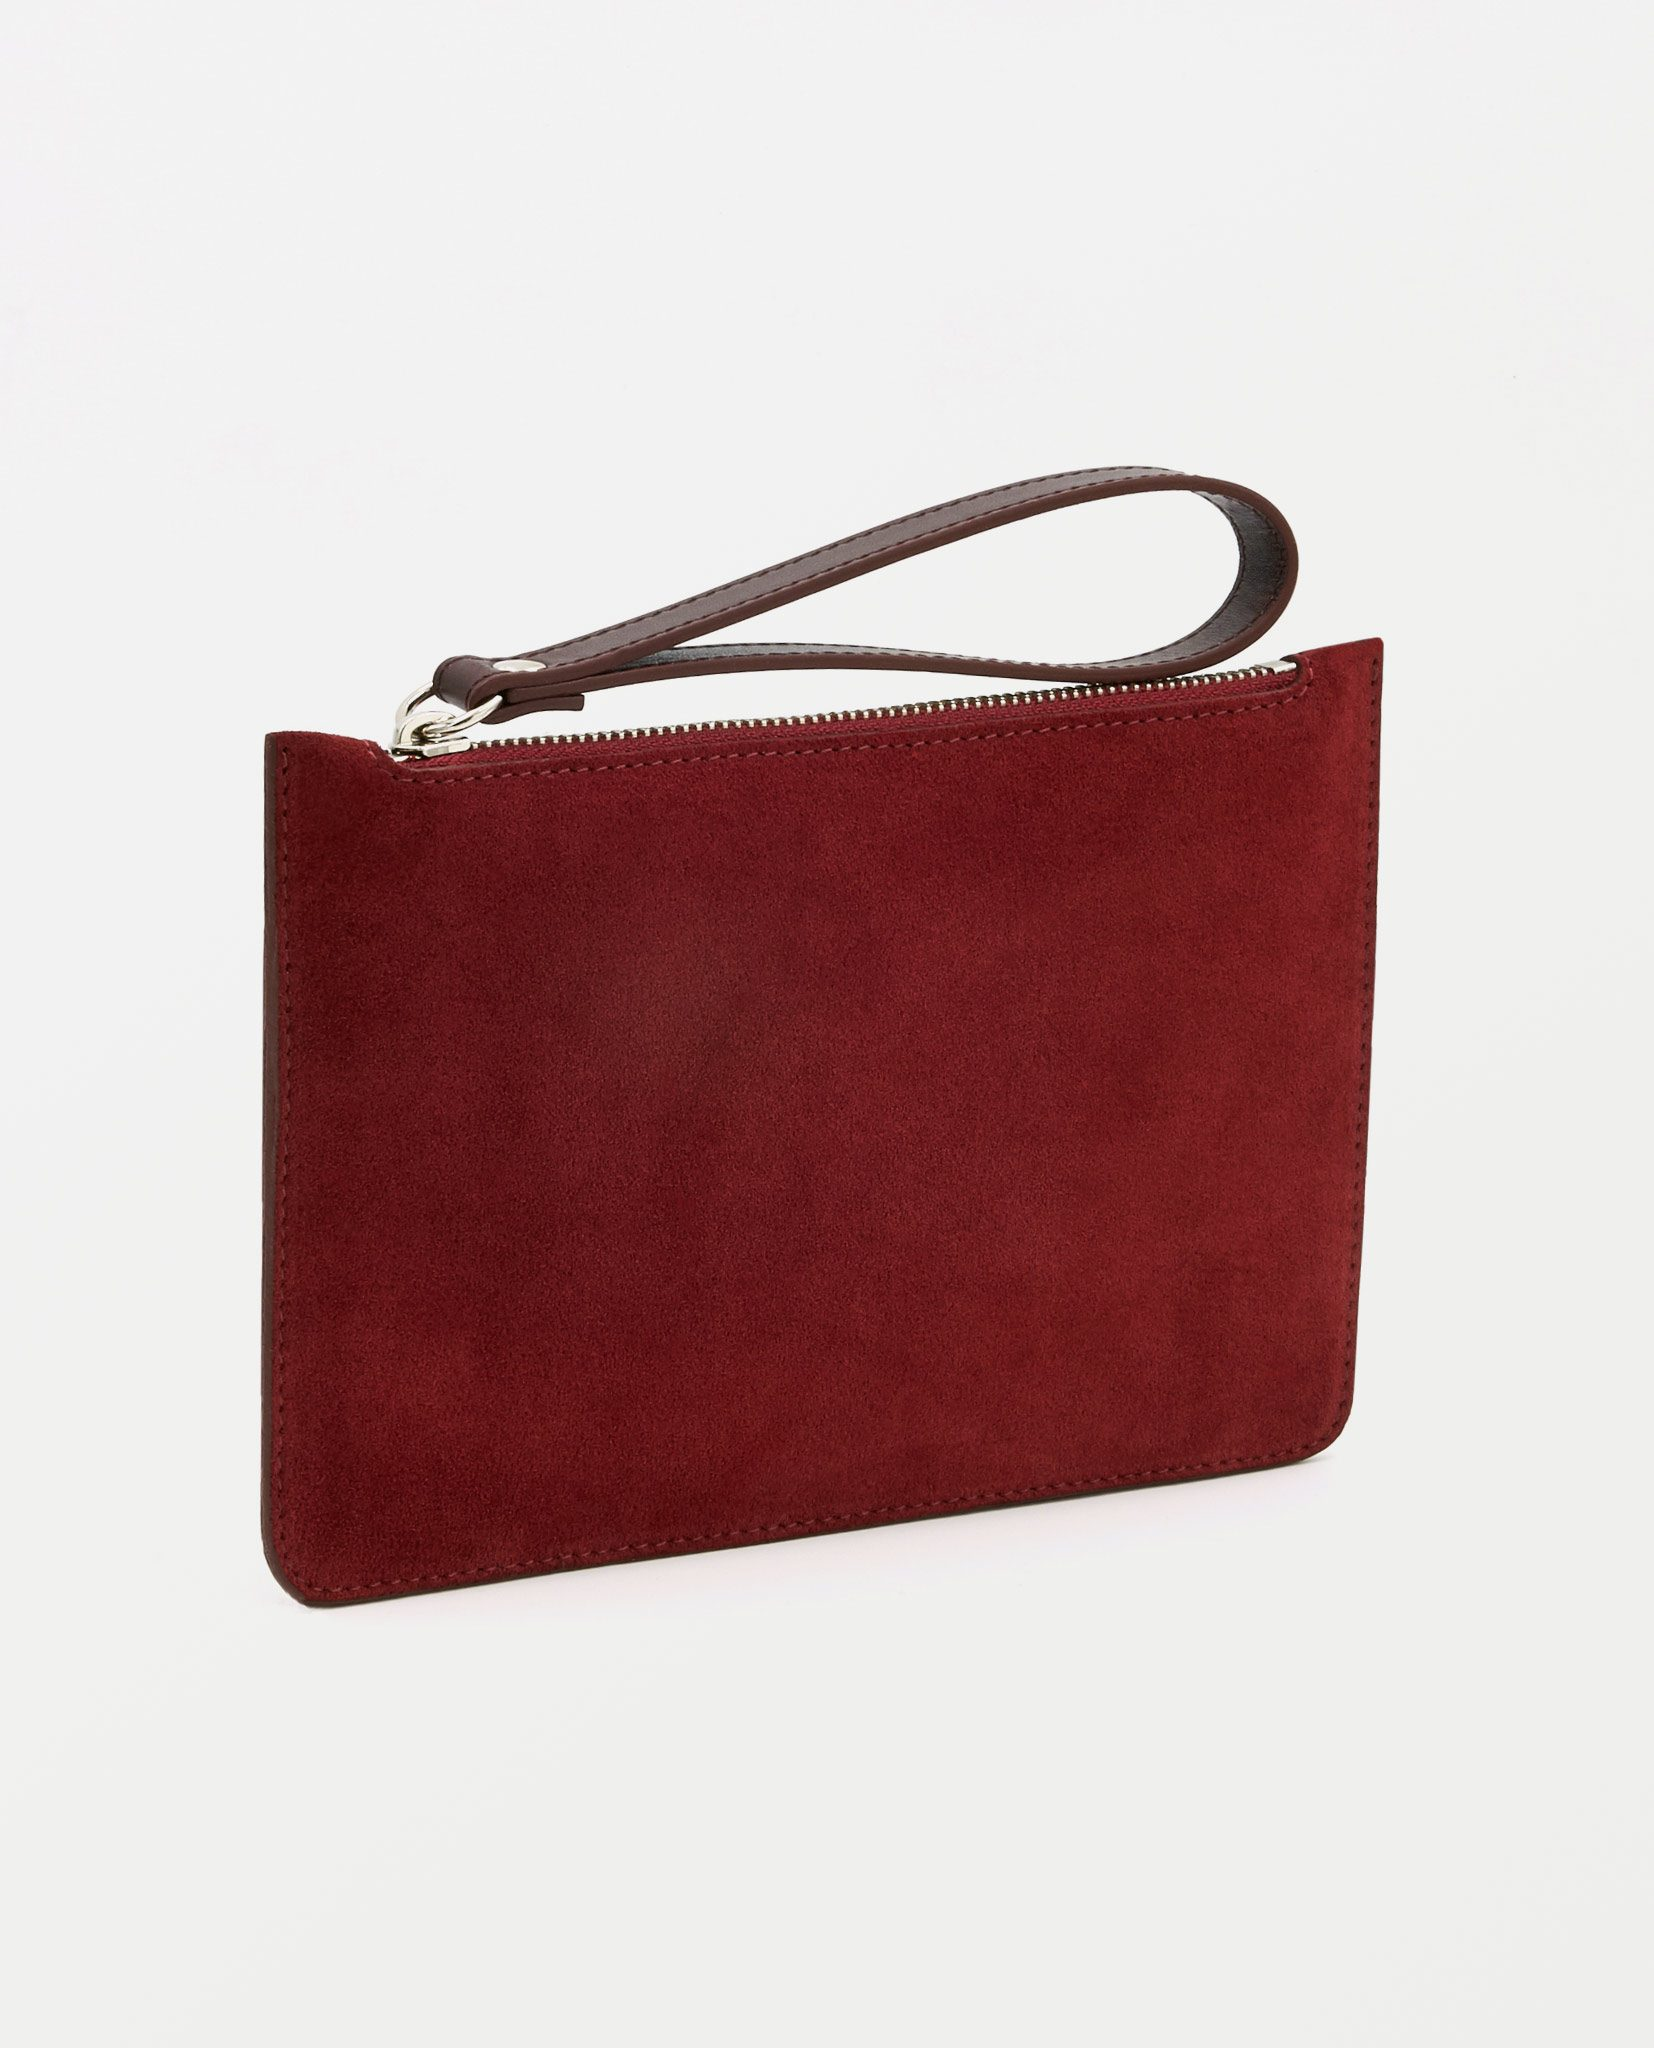 Soofre Small Suede Leather Pouch Burgundy